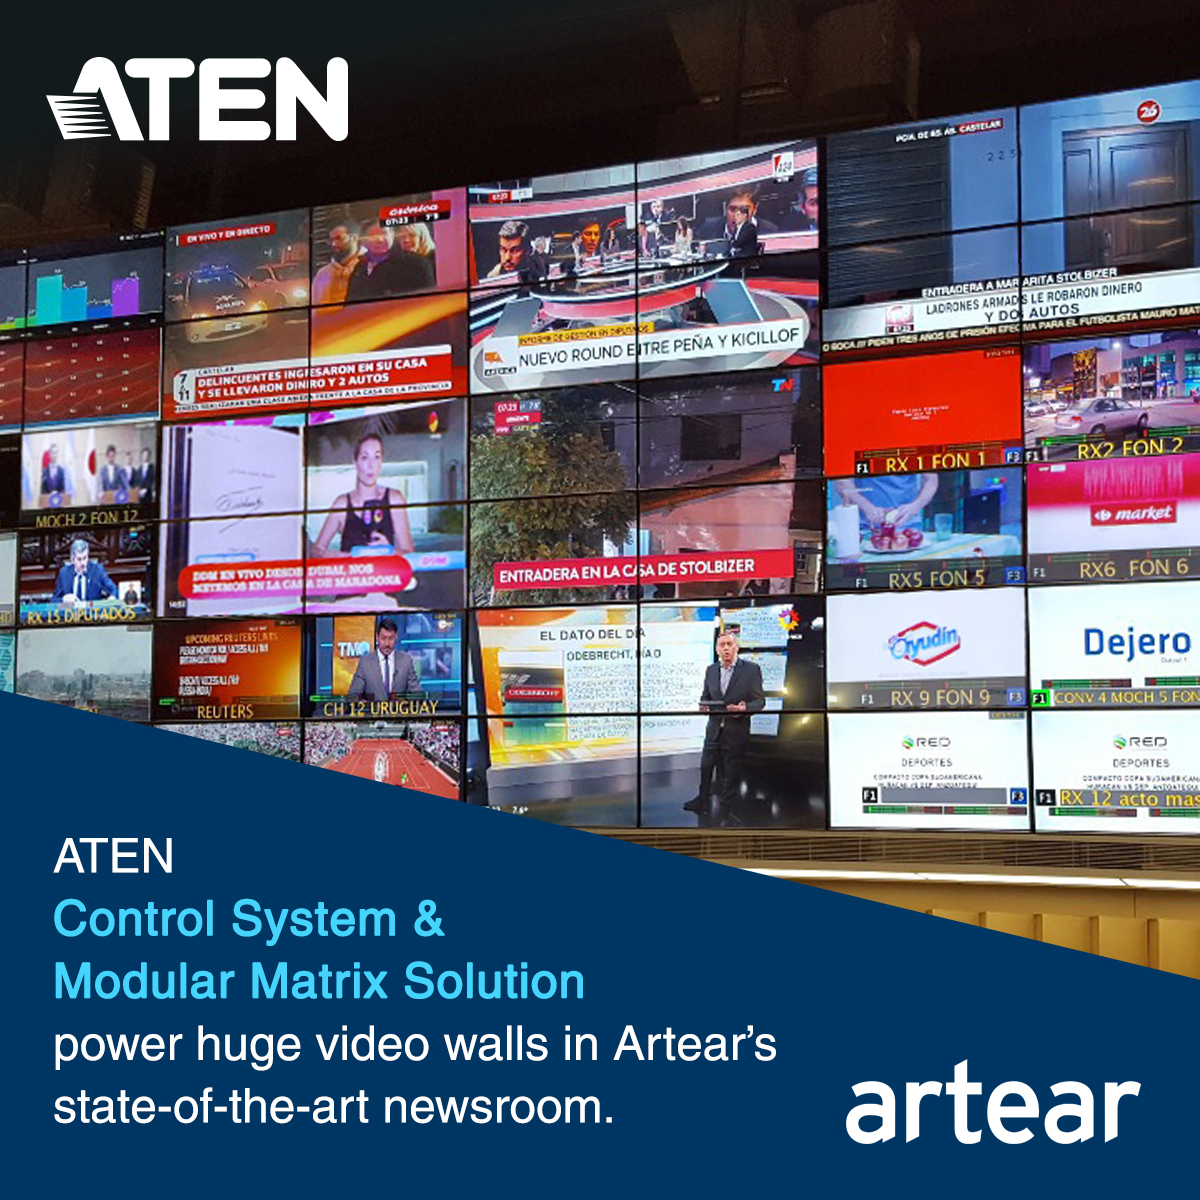 ATEN Control System & Modular Matrix Solution Power Huge Video Walls in Artear's State-of-the-art Newsroom